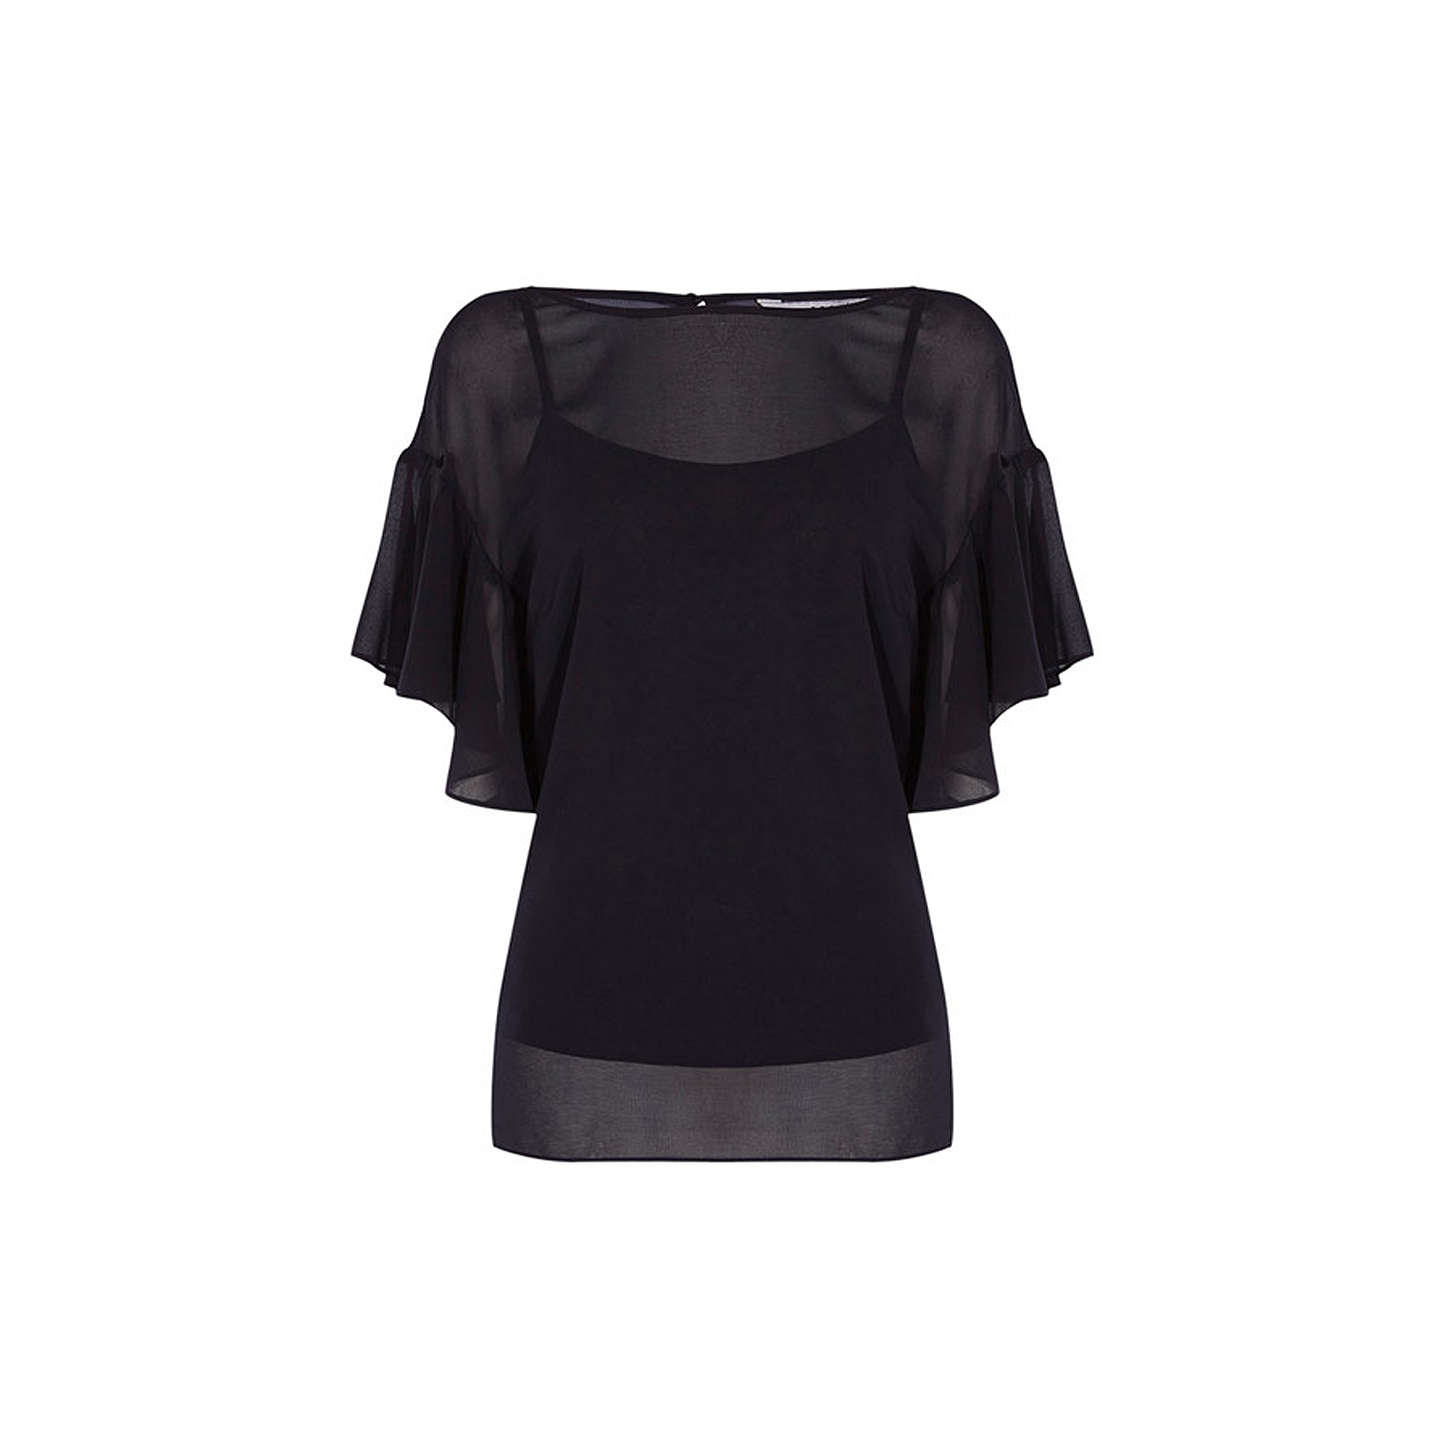 Coast Angel Georgette Top For Sale Cheap Price From China sJVG7w